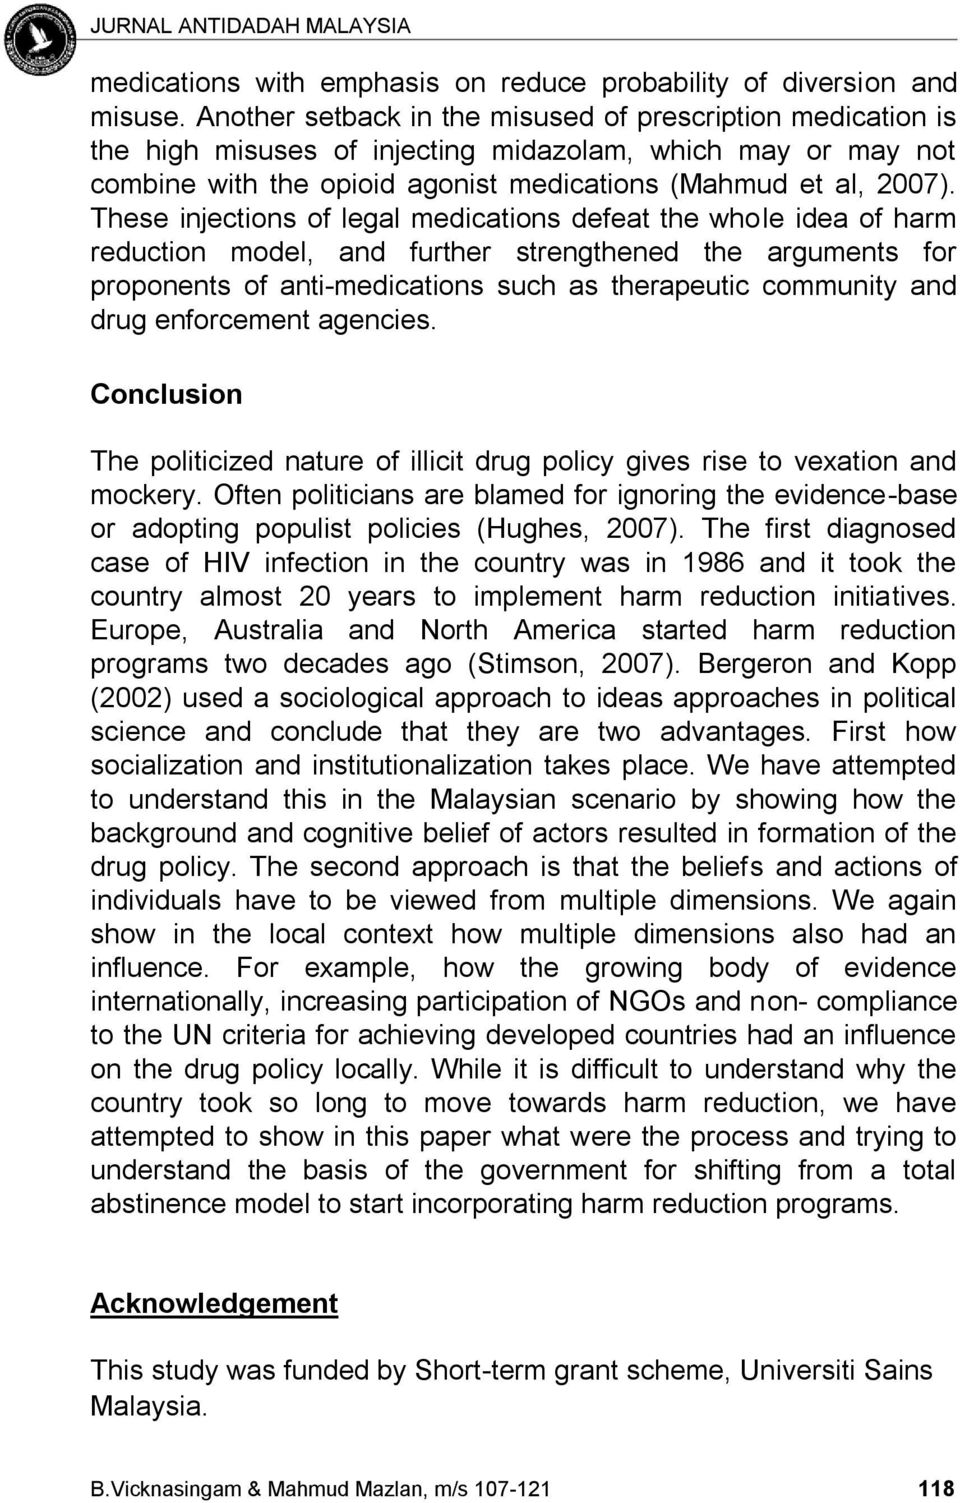 These injections of legal medications defeat the whole idea of harm reduction model, and further strengthened the arguments for proponents of anti-medications such as therapeutic community and drug